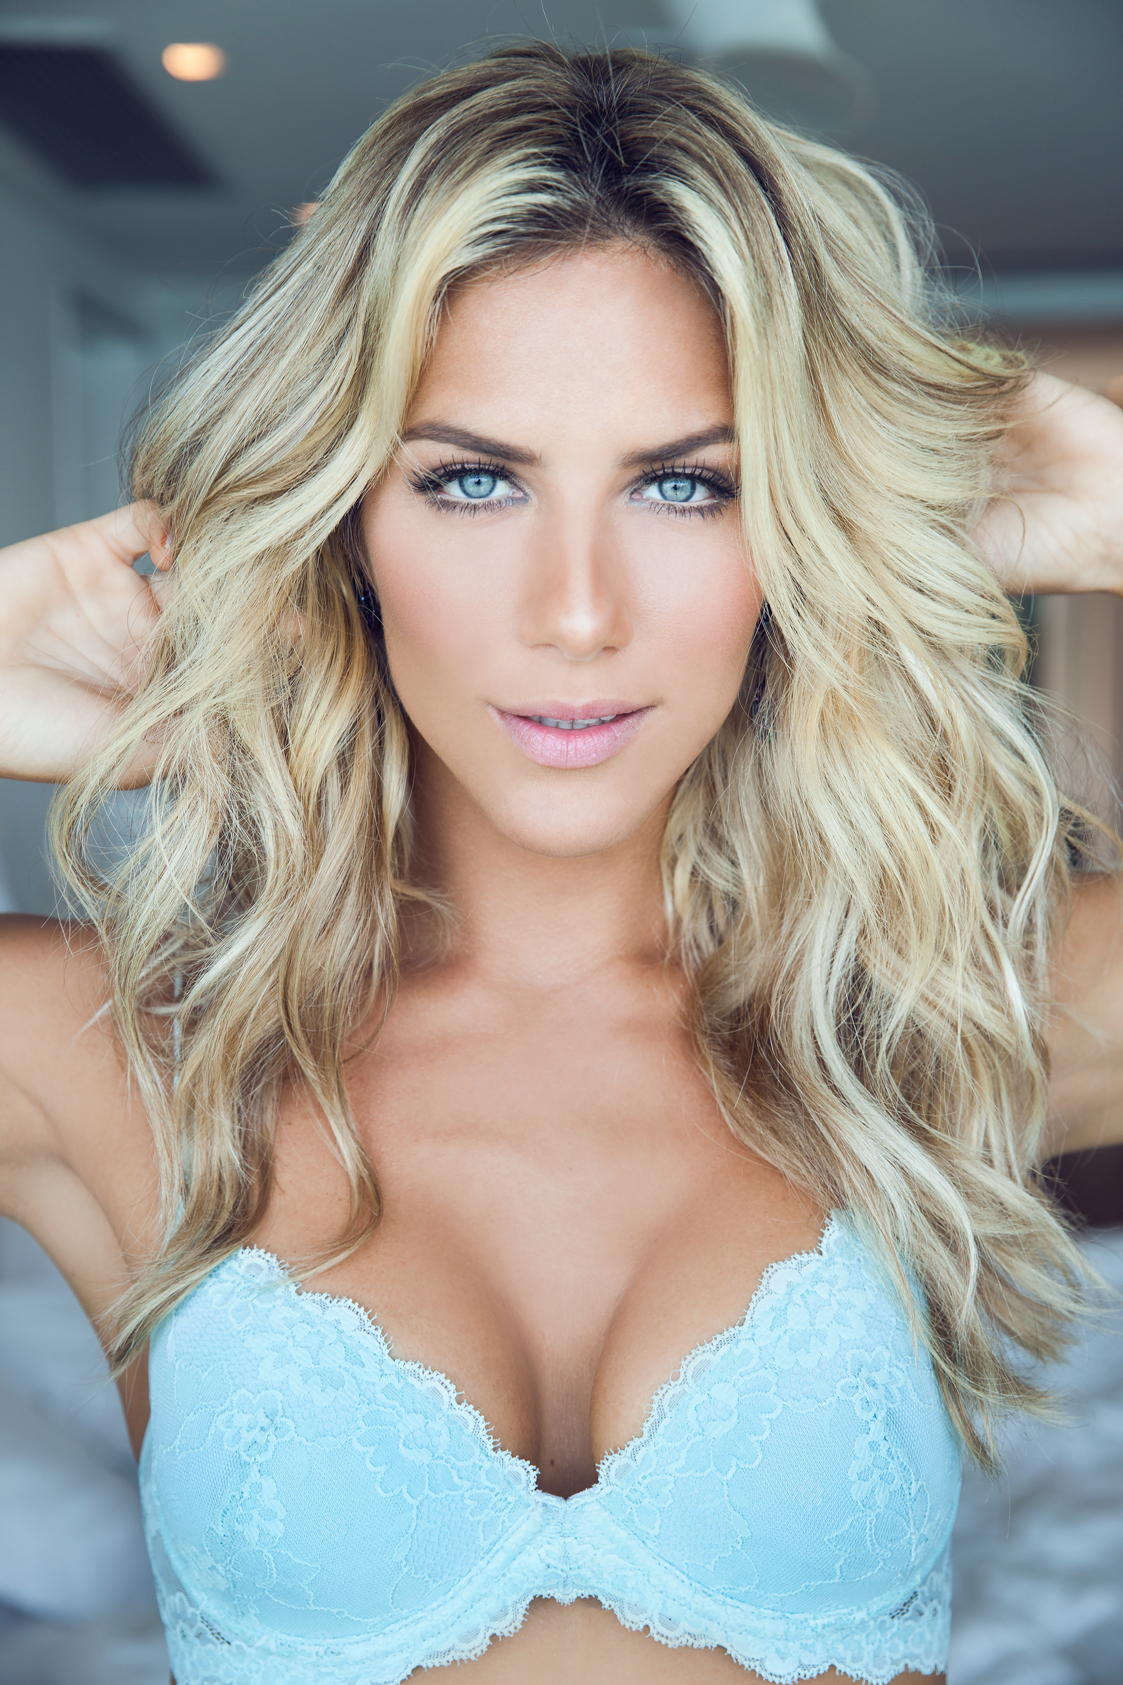 Celebrity Giovanna Ewbank nudes (33 photos), Sexy, Cleavage, Selfie, see through 2017